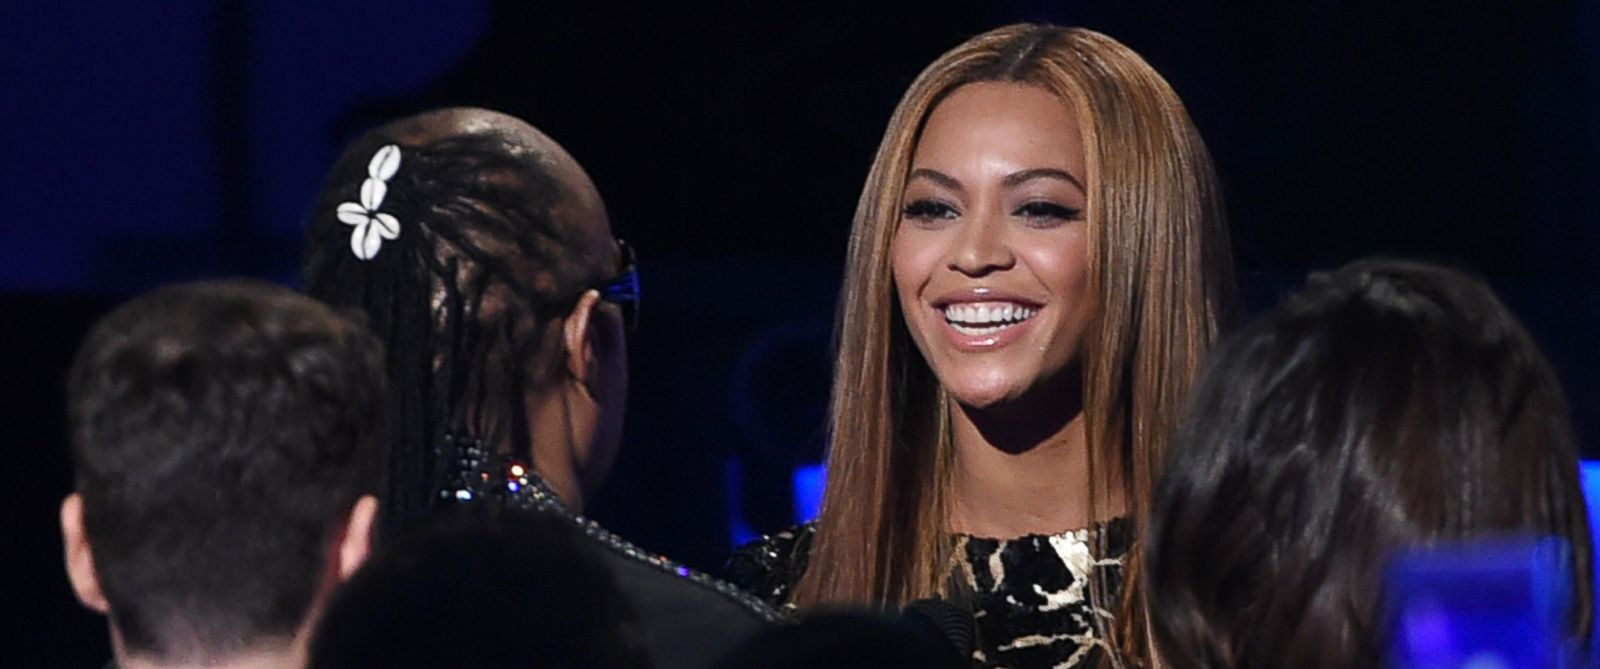 """PHOTO: Beyonce, right, greets Stevie Wonder in the audience before her performance at """"Stevie Wonder: Songs in the Key of Life - An All-Star Grammy Salute,"""" Feb. 10, 2015, in Los Angeles."""